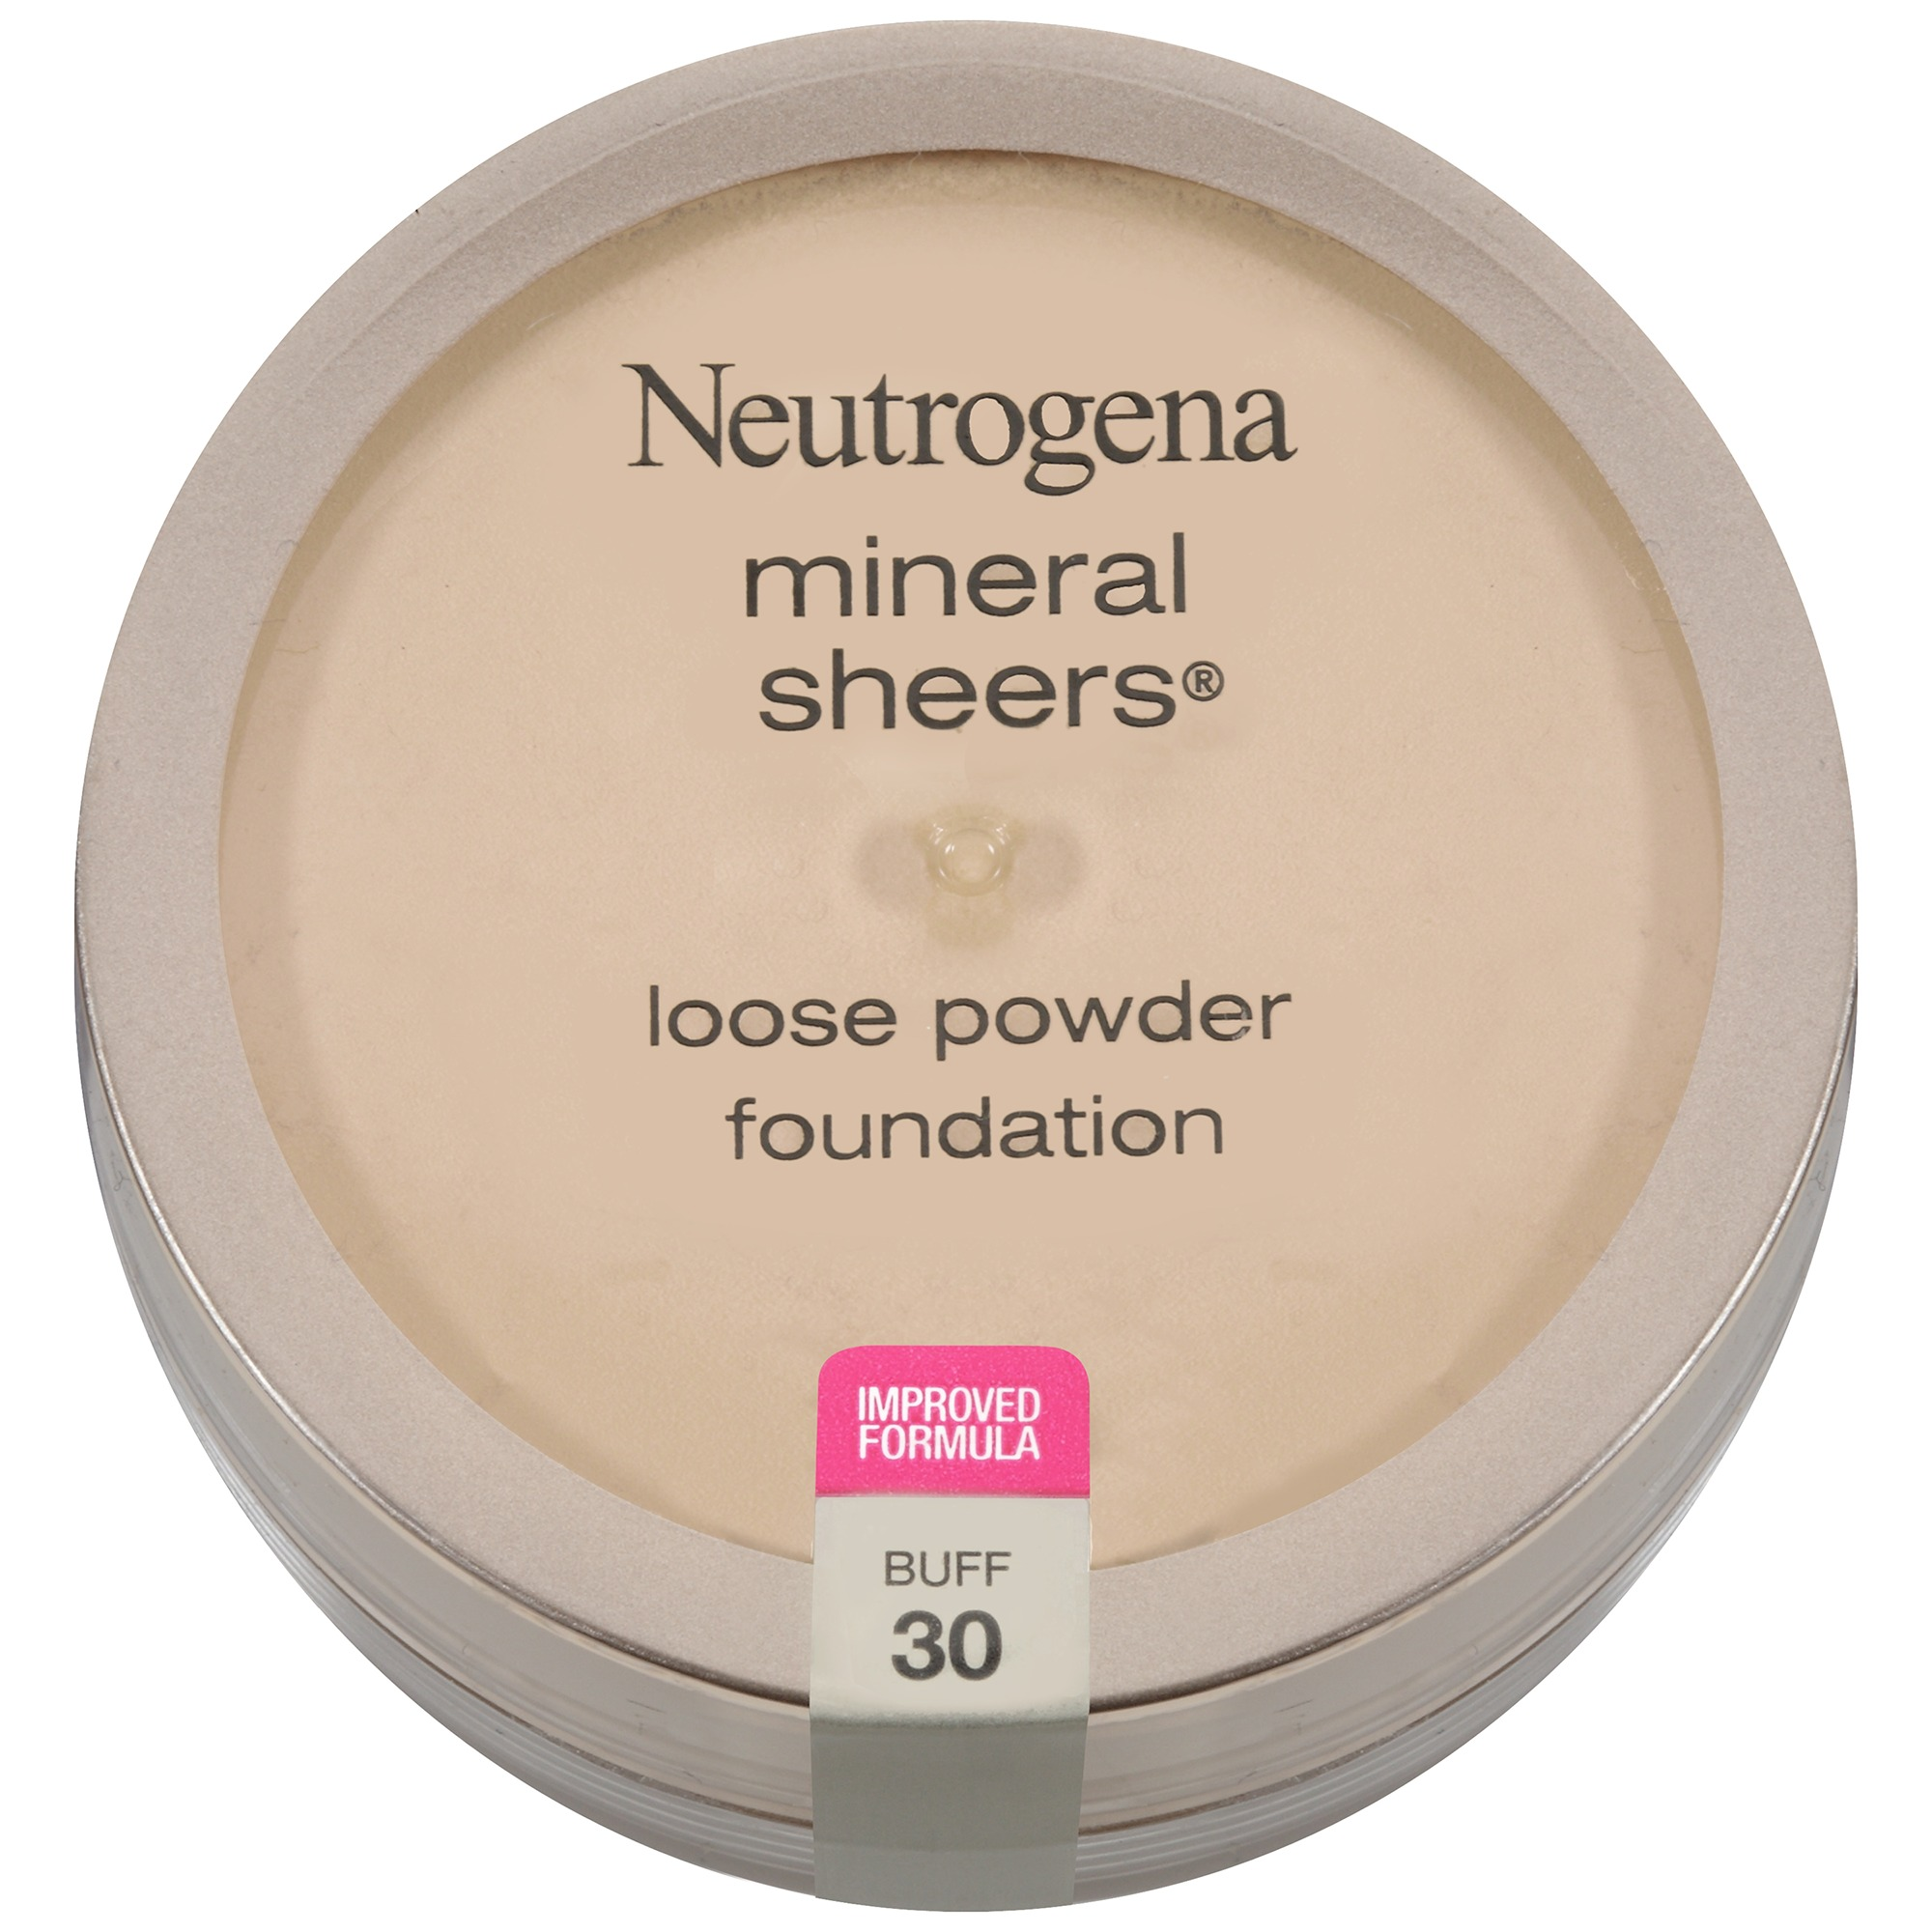 Neutrogena Mineral Sheers Loose Powder Foundation, Buff 30, .19 Oz